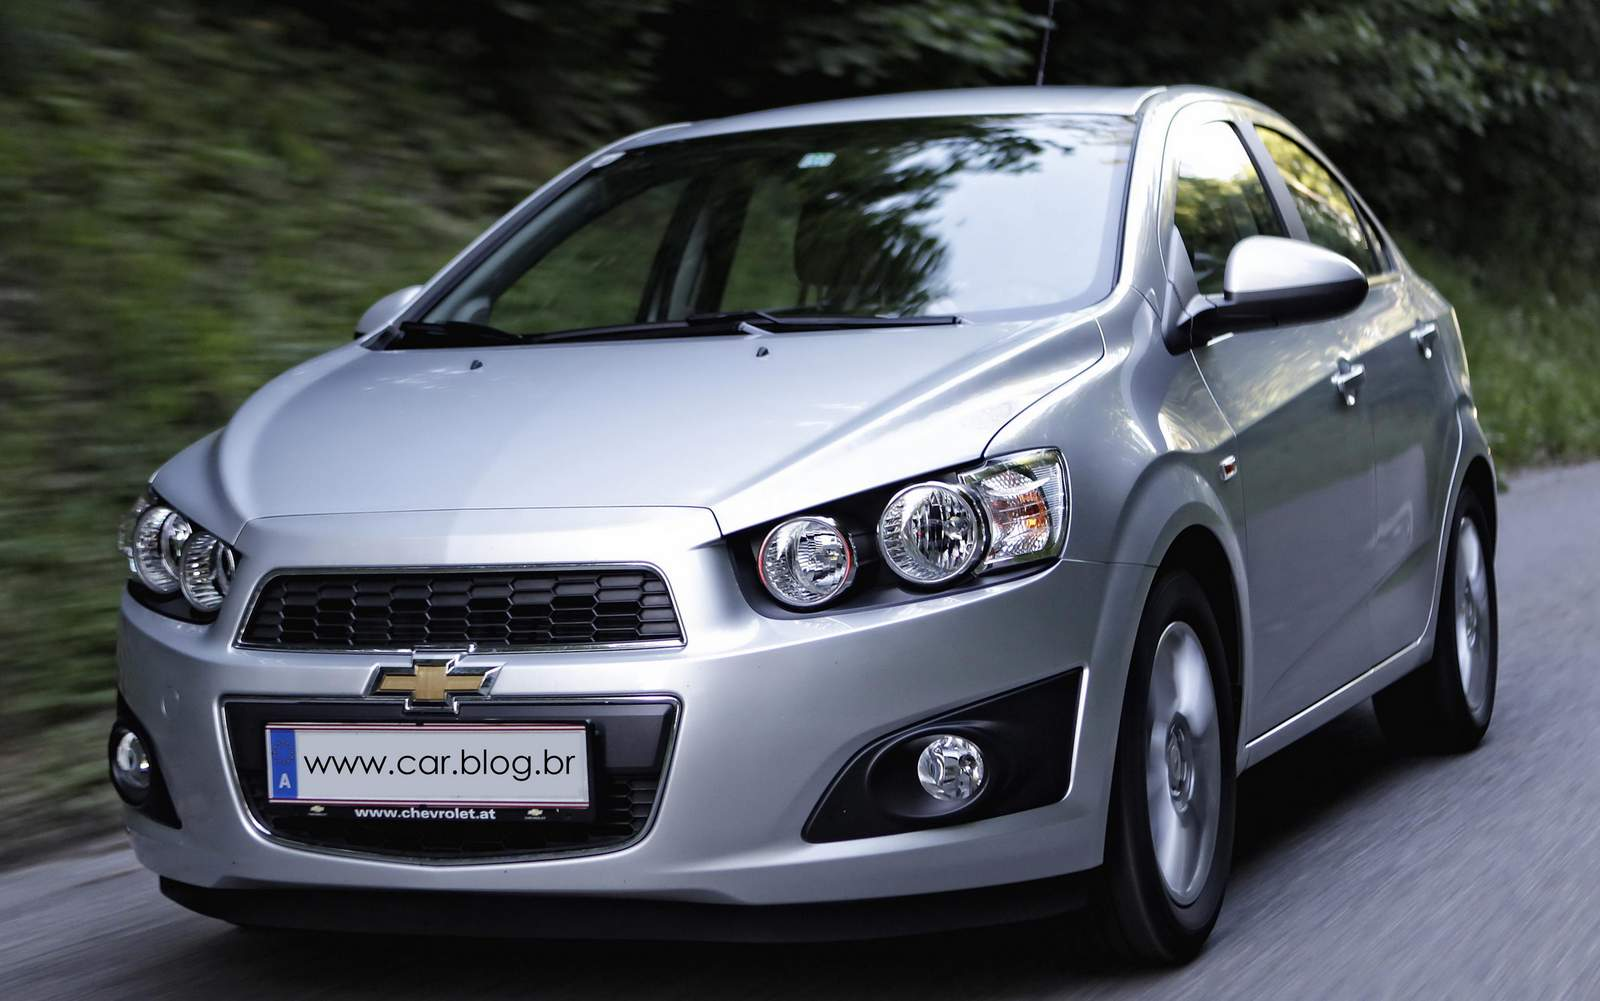 chevrolet sonic sedan 2013 car information news reviews videos photos advices and more. Black Bedroom Furniture Sets. Home Design Ideas